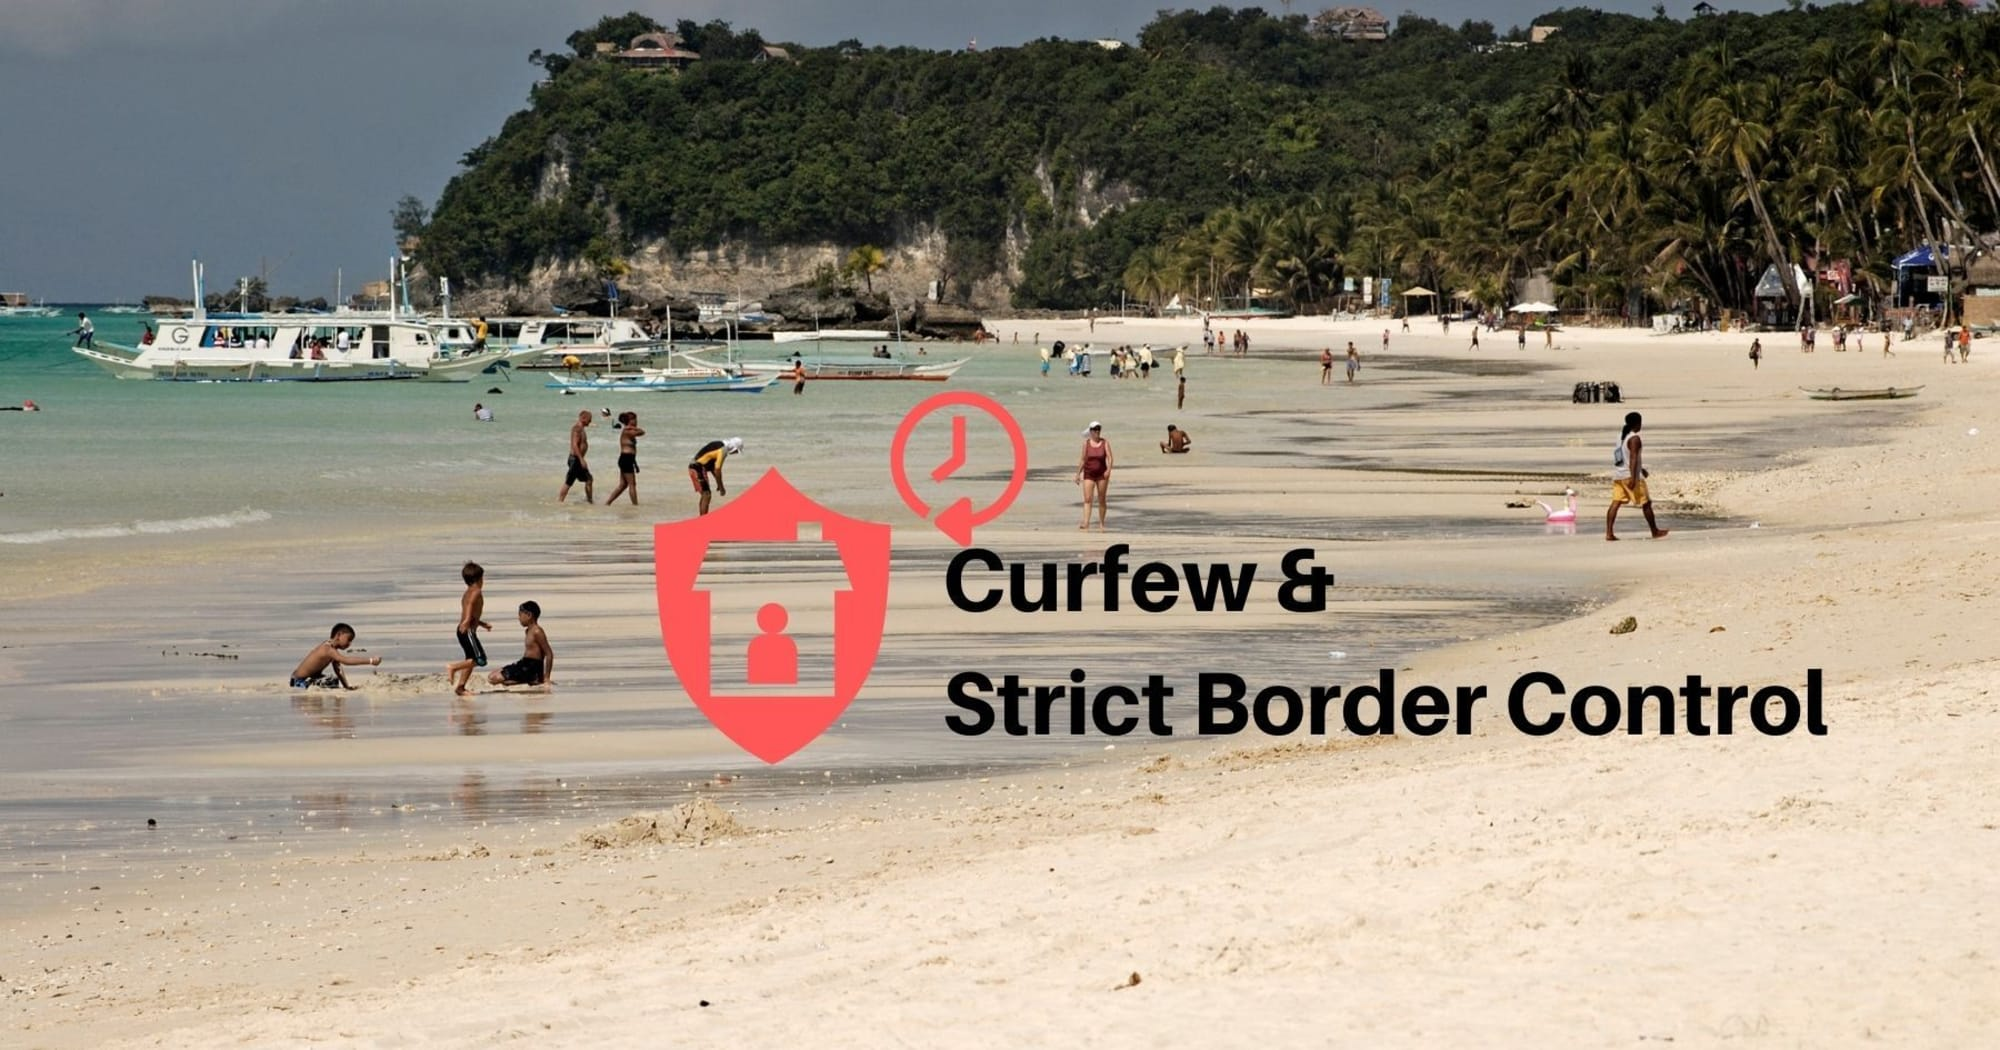 Strict border control and curfew hours extension for everyone's safety